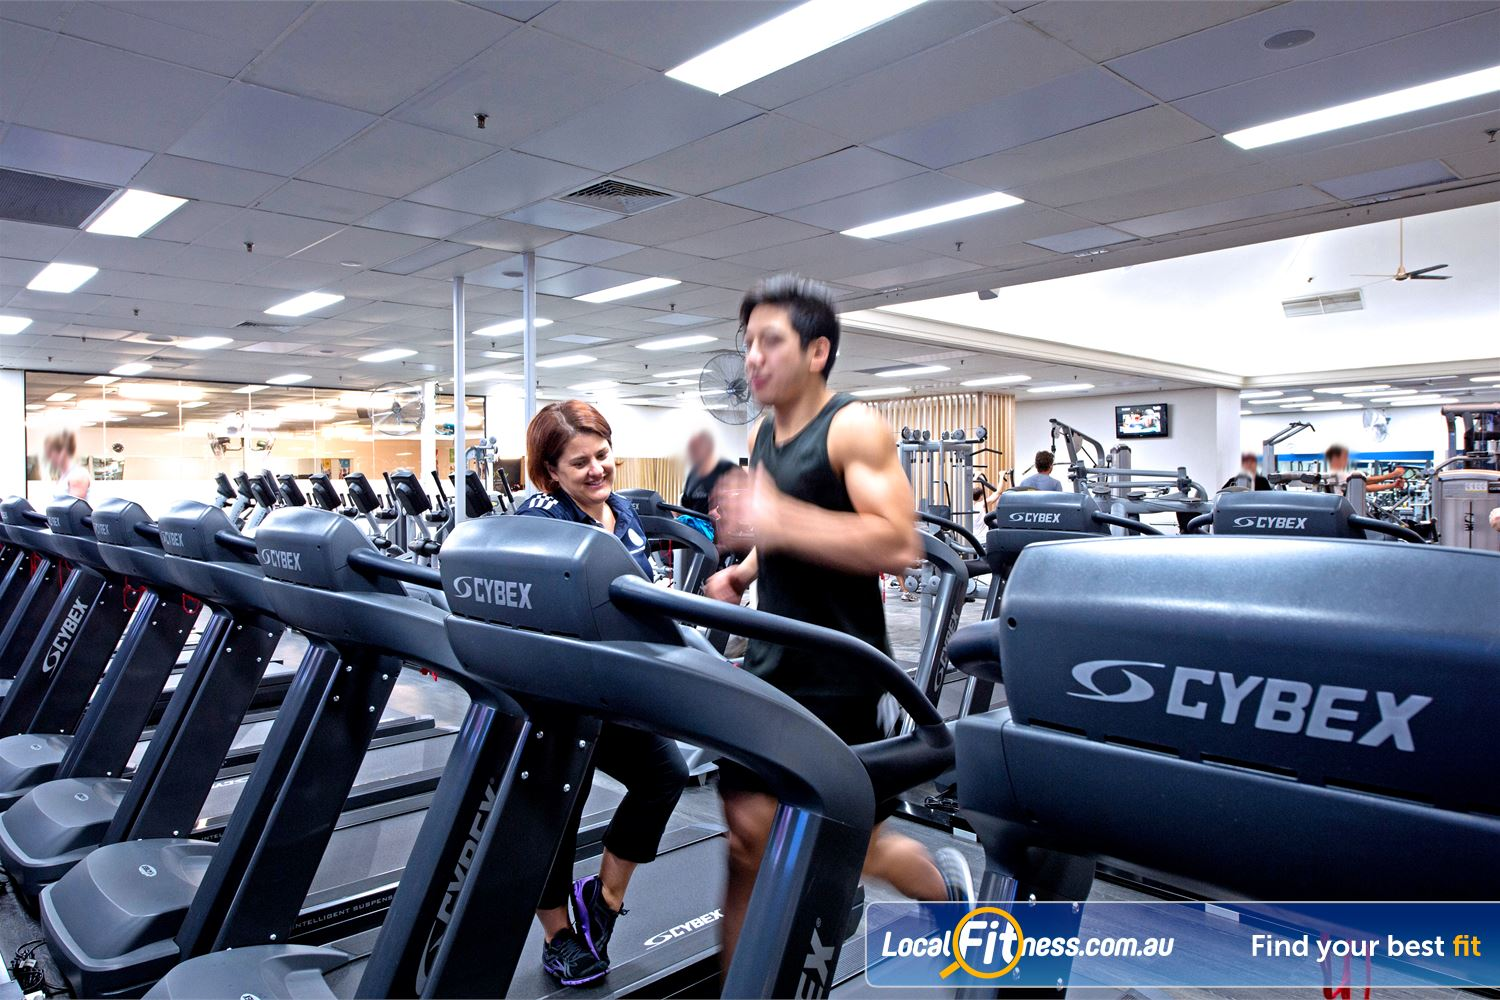 Goodlife Health Clubs Cottesloe Our Cottesloe gym cardio area provides a wide selection.